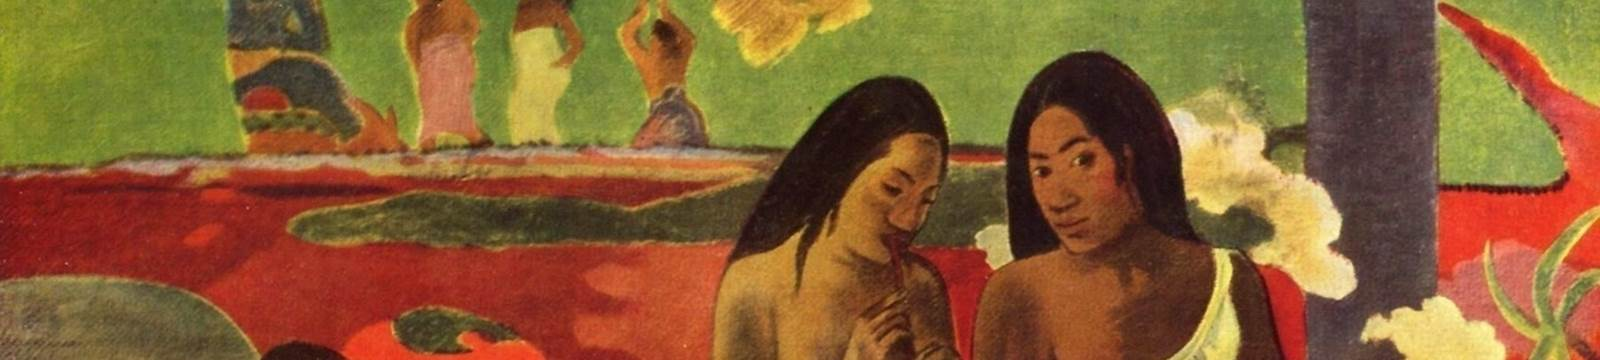 Gauguin's Influence on Picasso